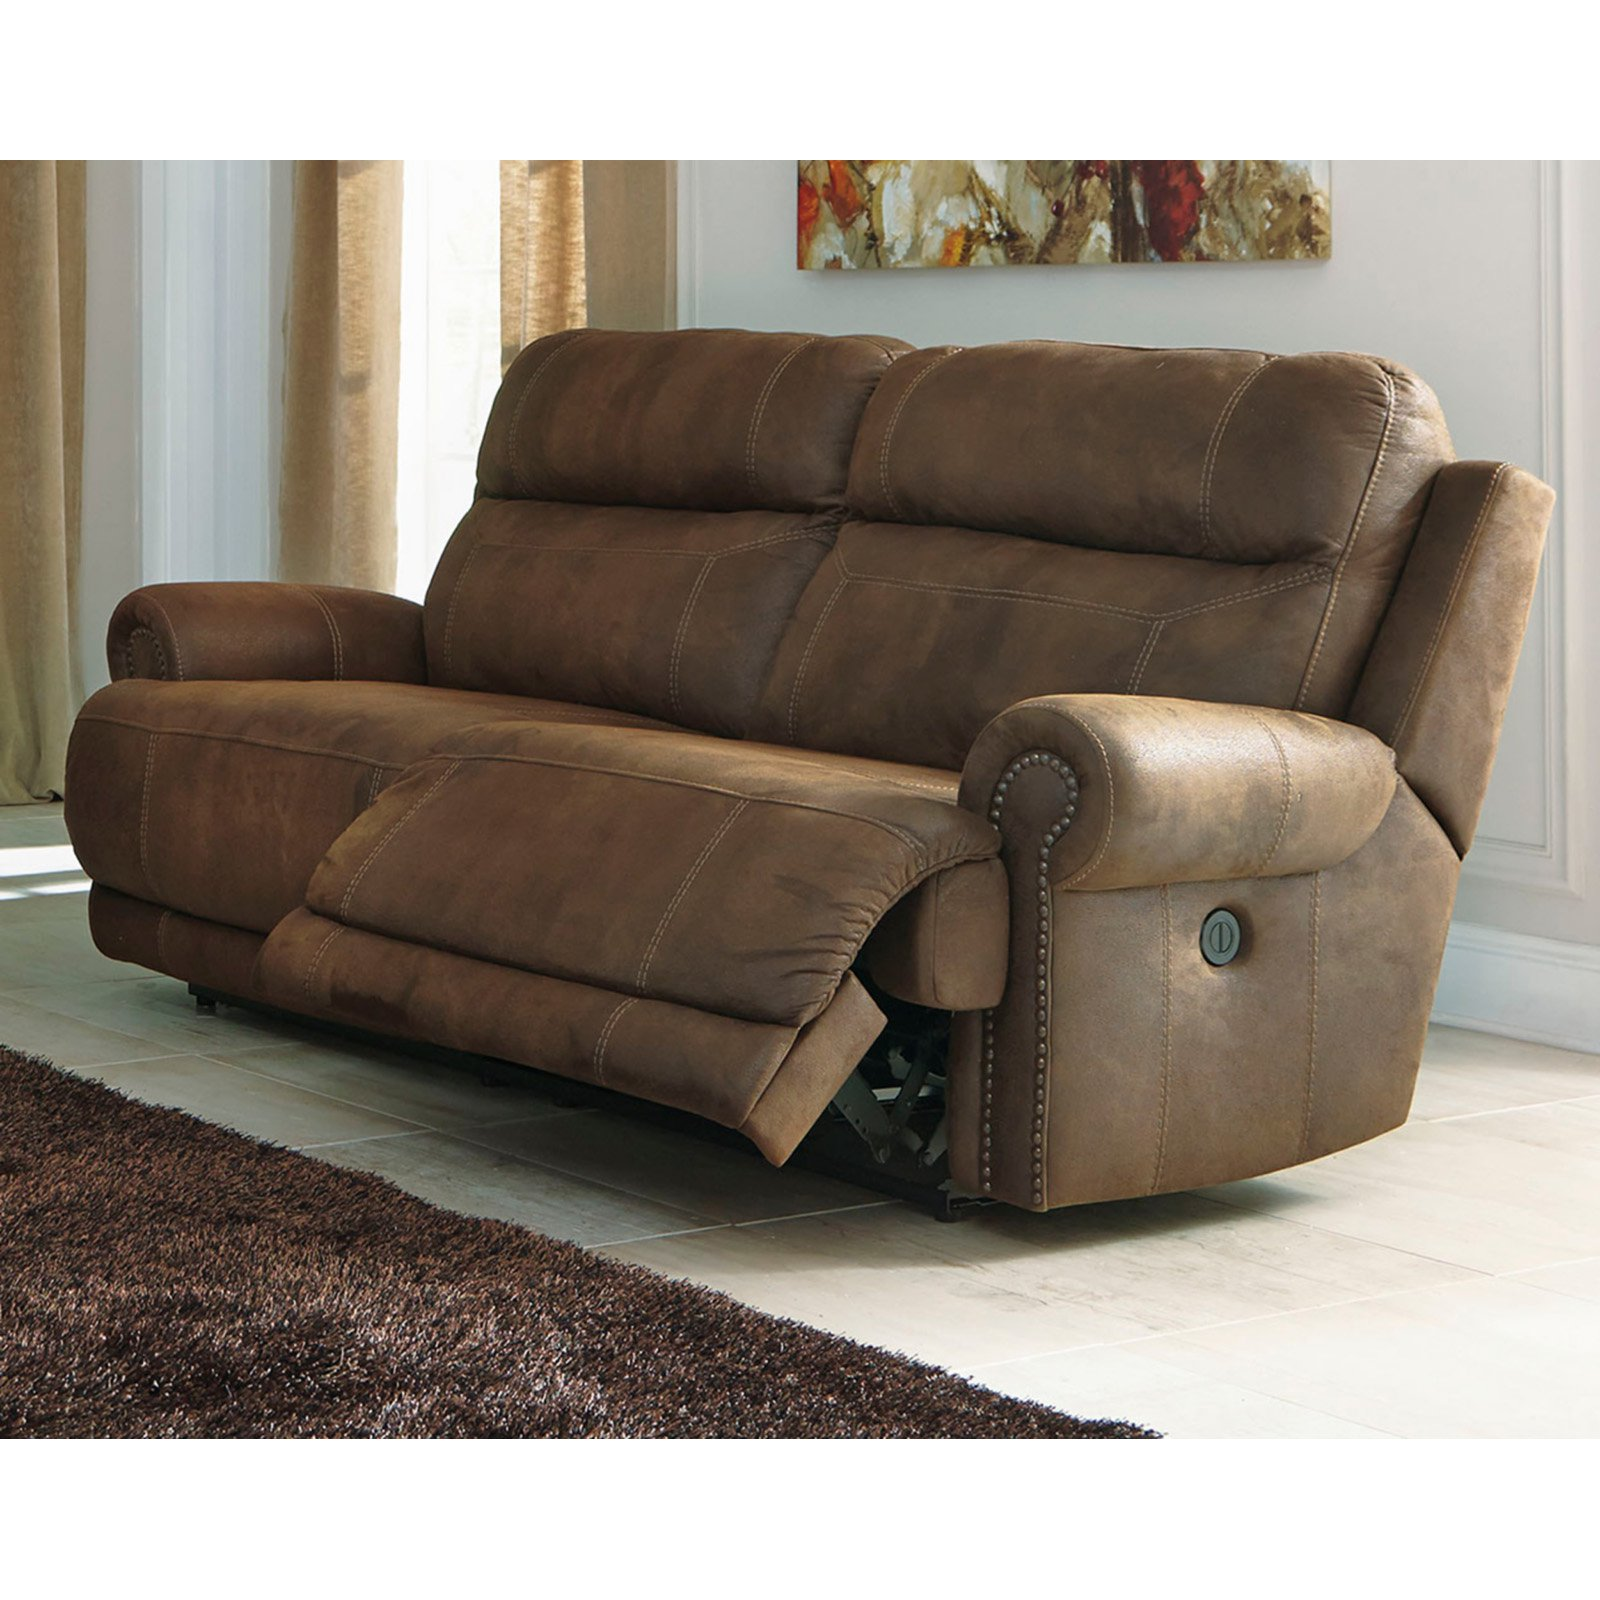 Signature Design by Ashley Austere 2-Seat Reclining Power Sofa